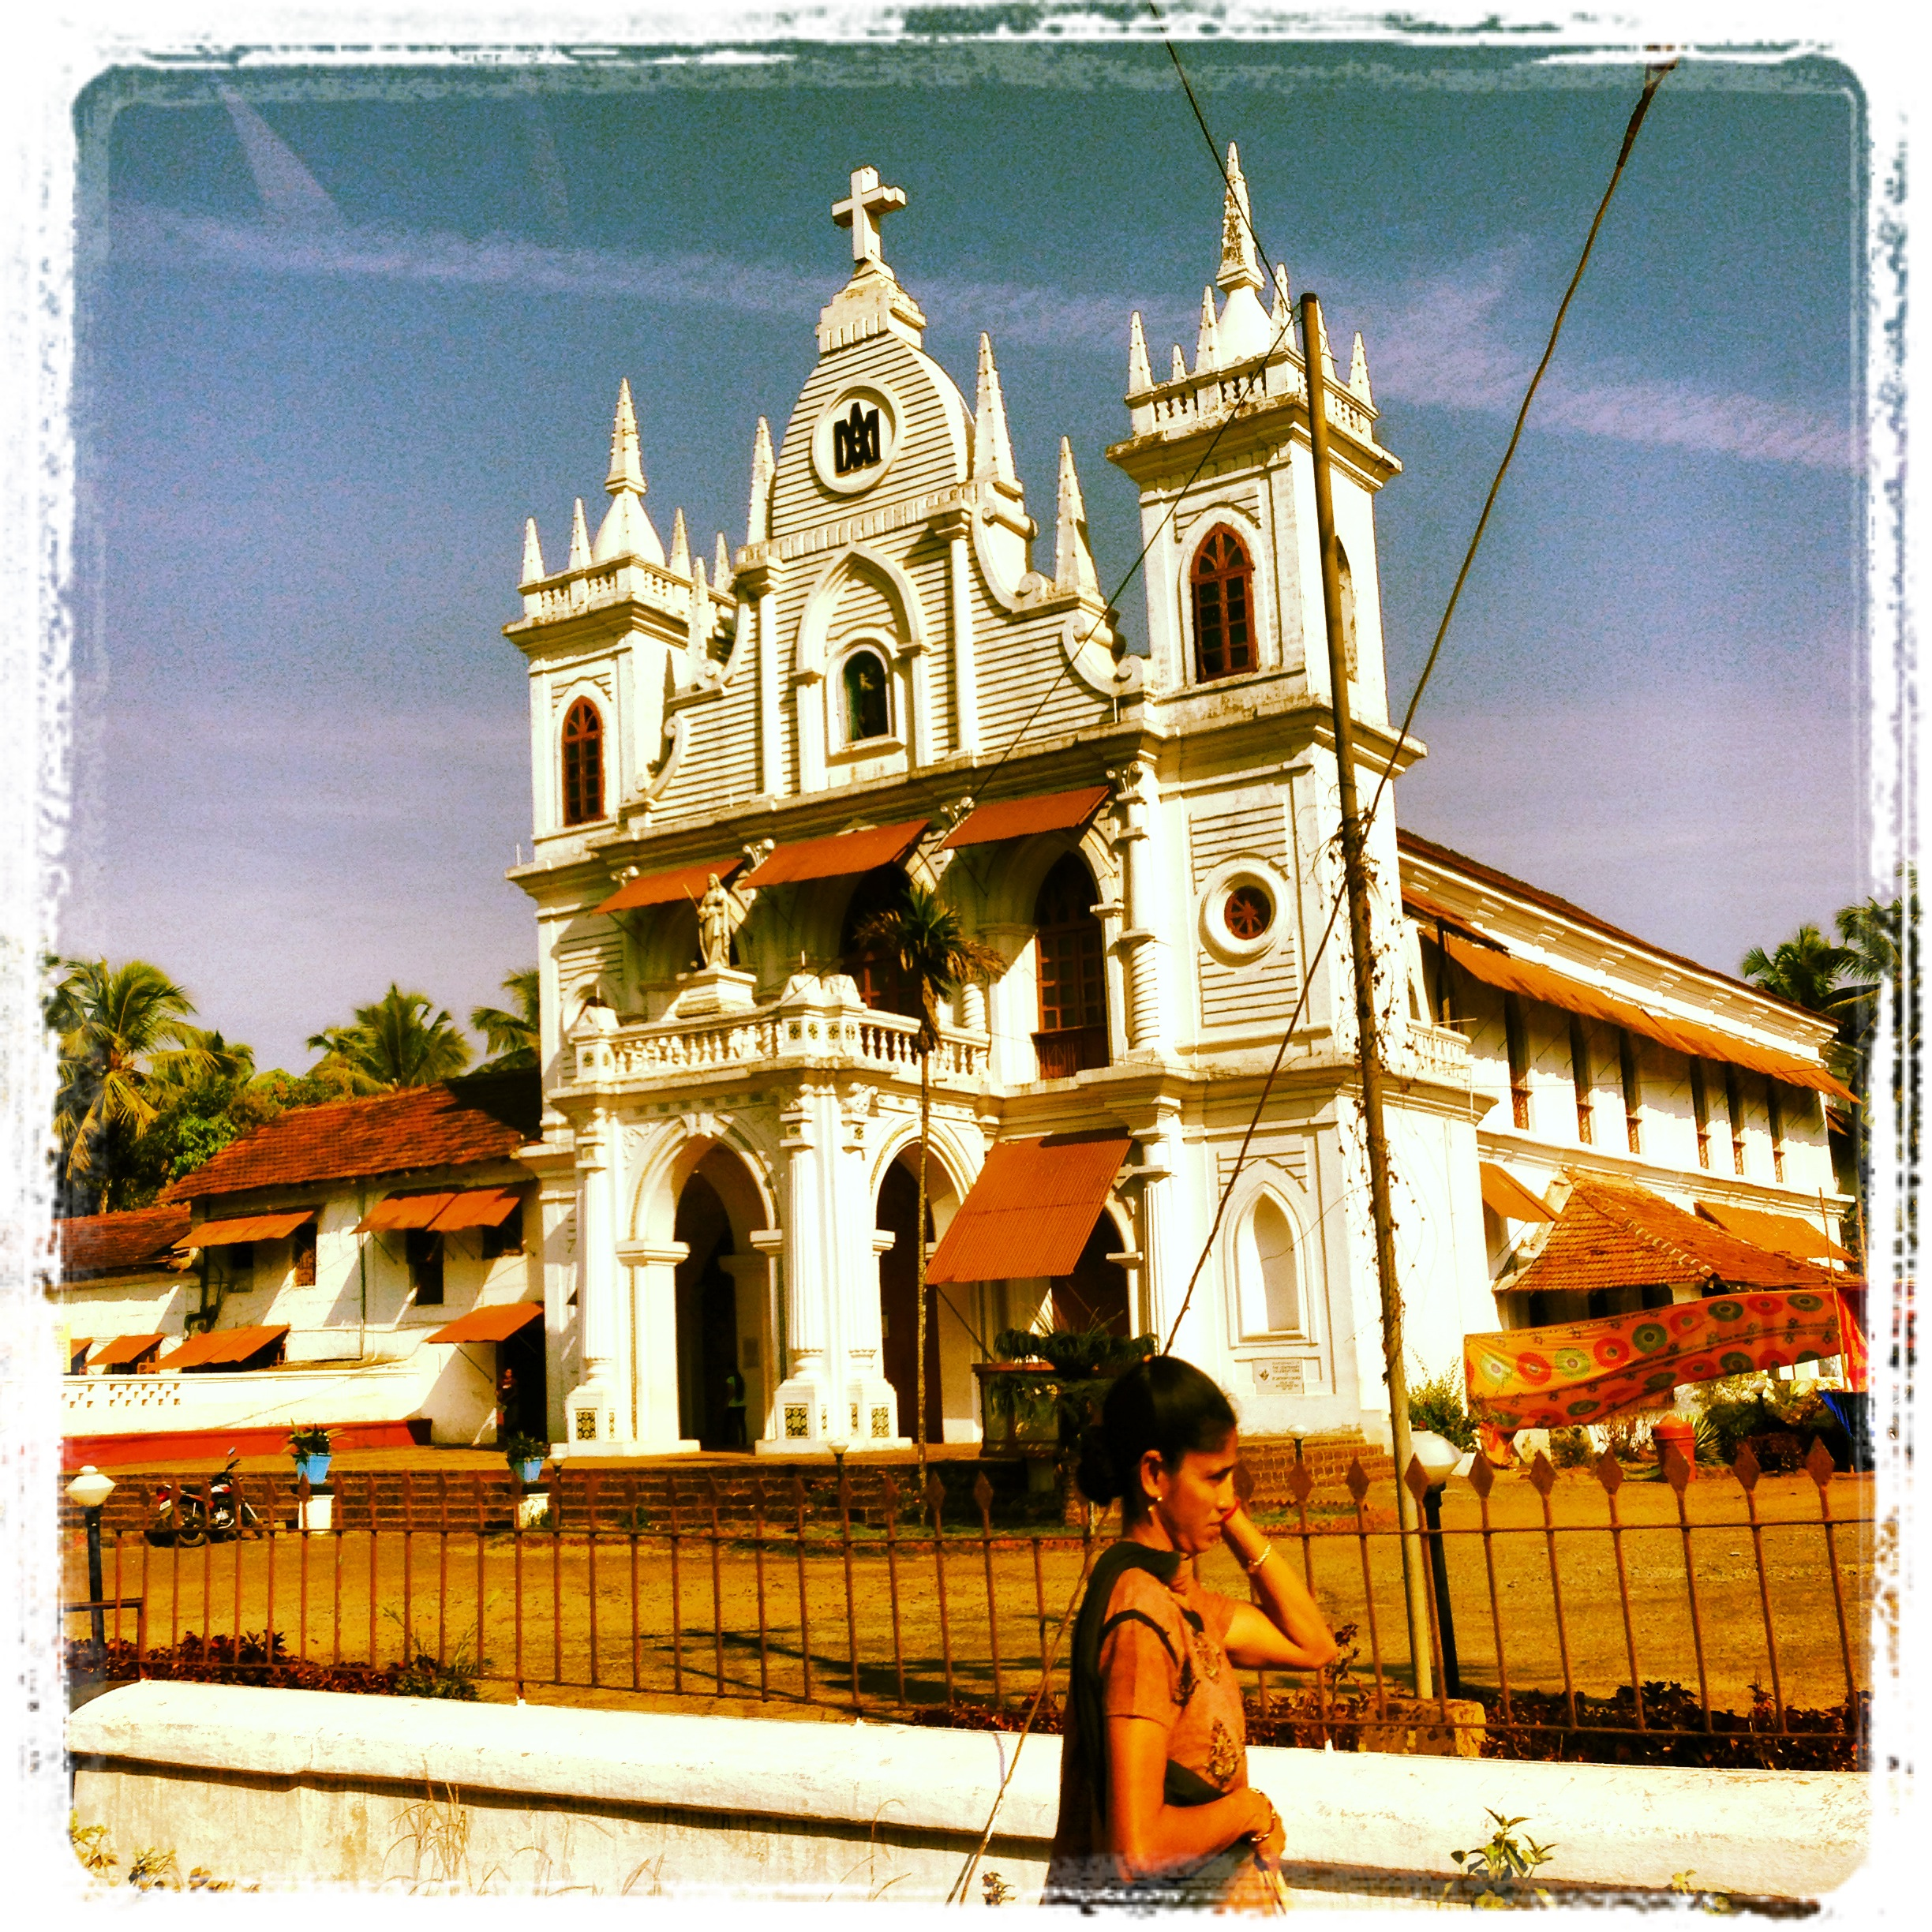 St. Antony's Church